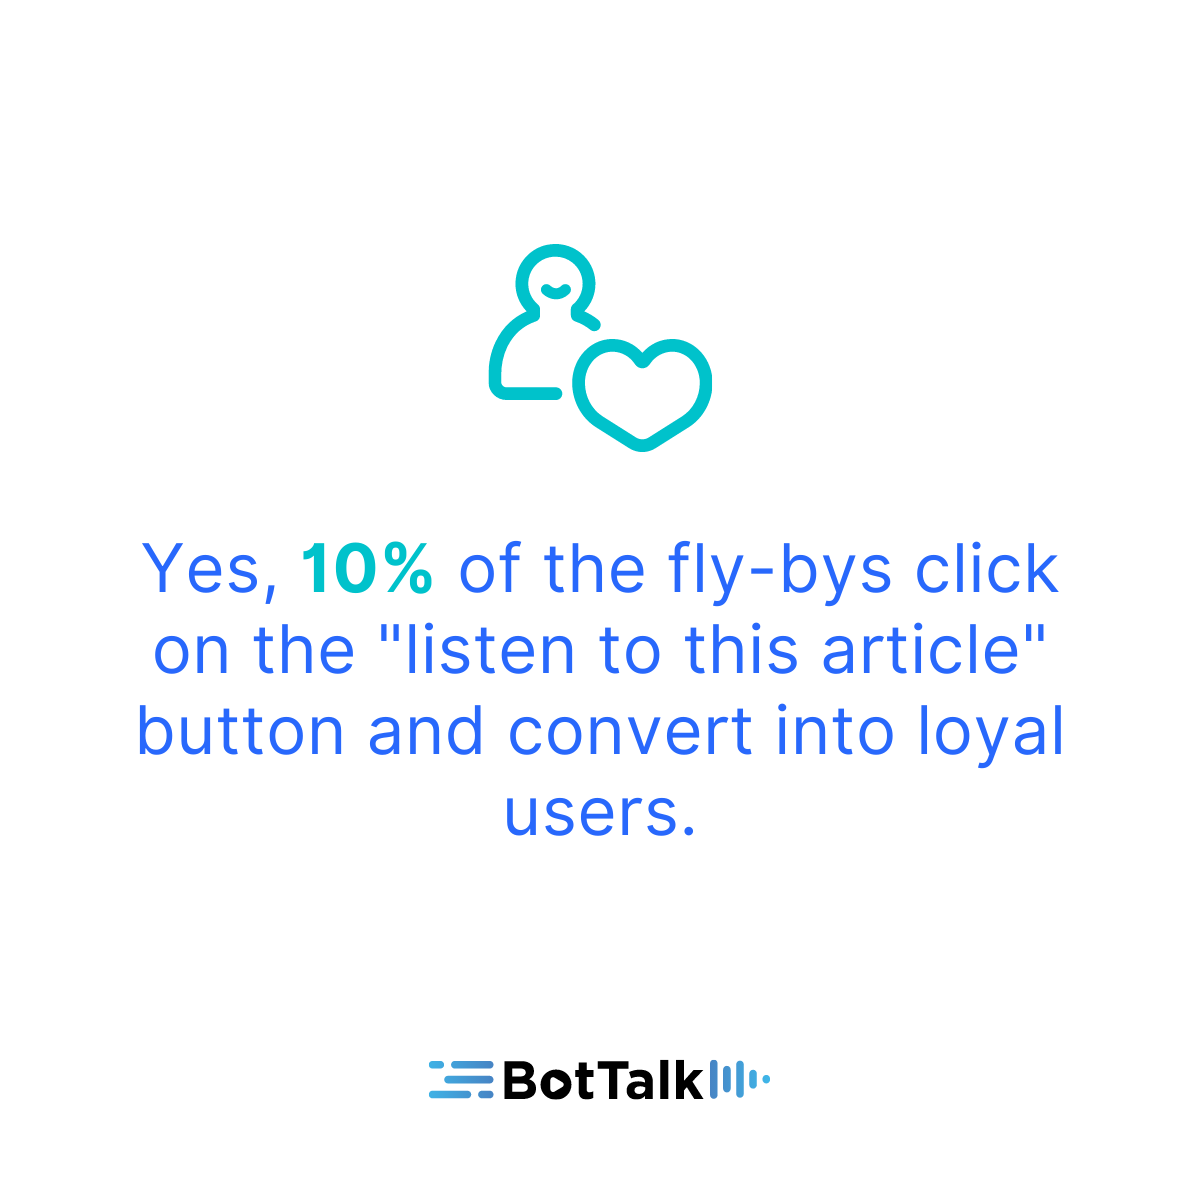 """10% of the fly-bys click on the """"listen to this article"""" button and convert into loyal users."""